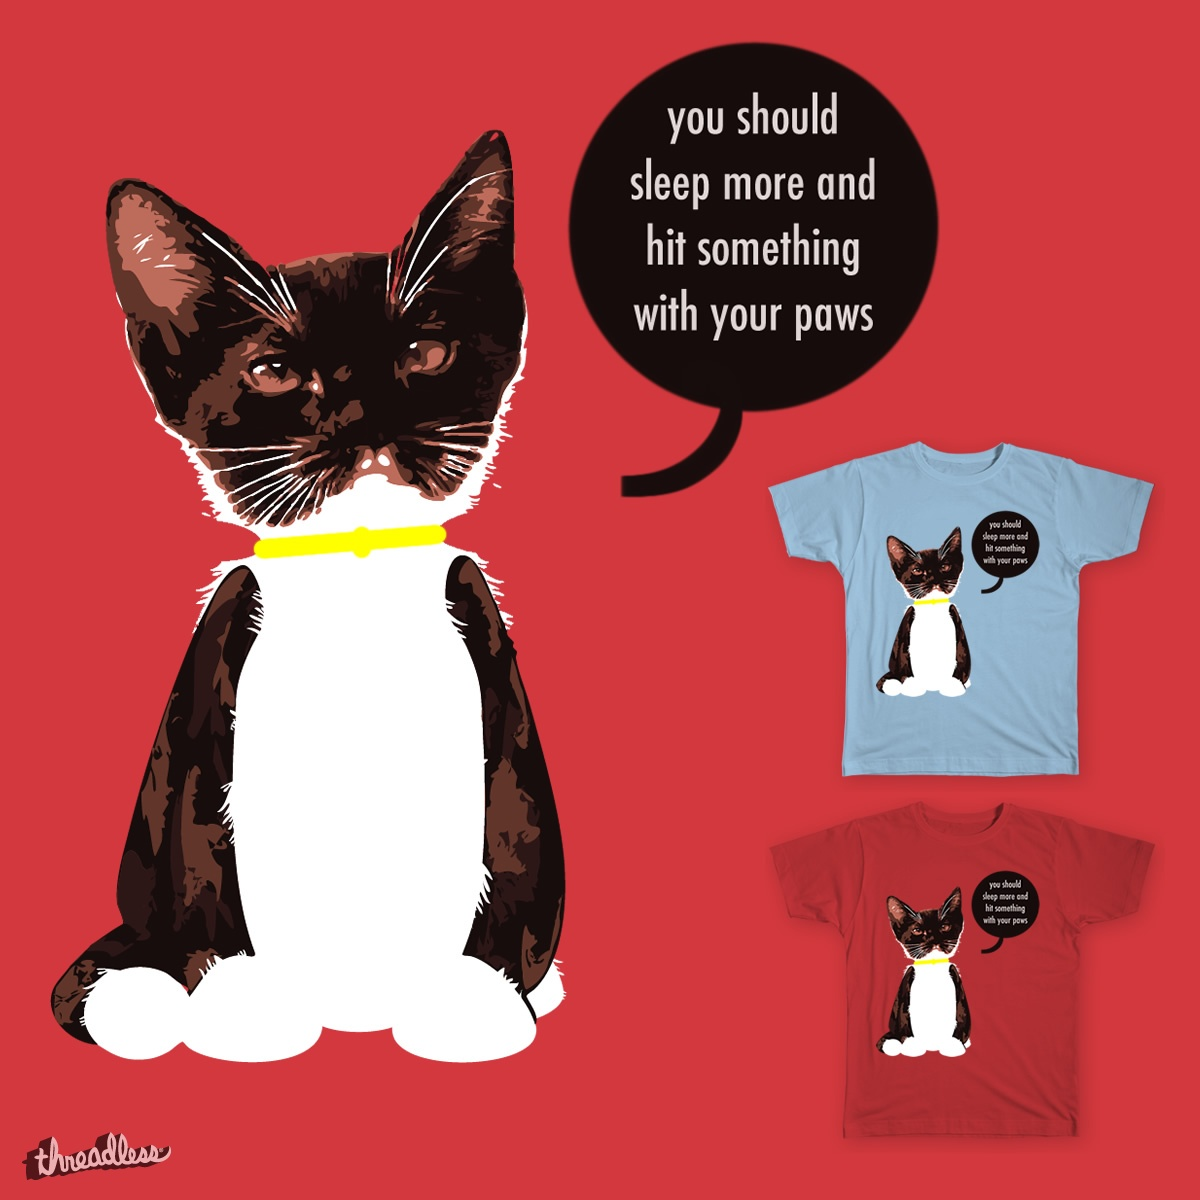 Cat Words of Wisdom, a cool t-shirt design